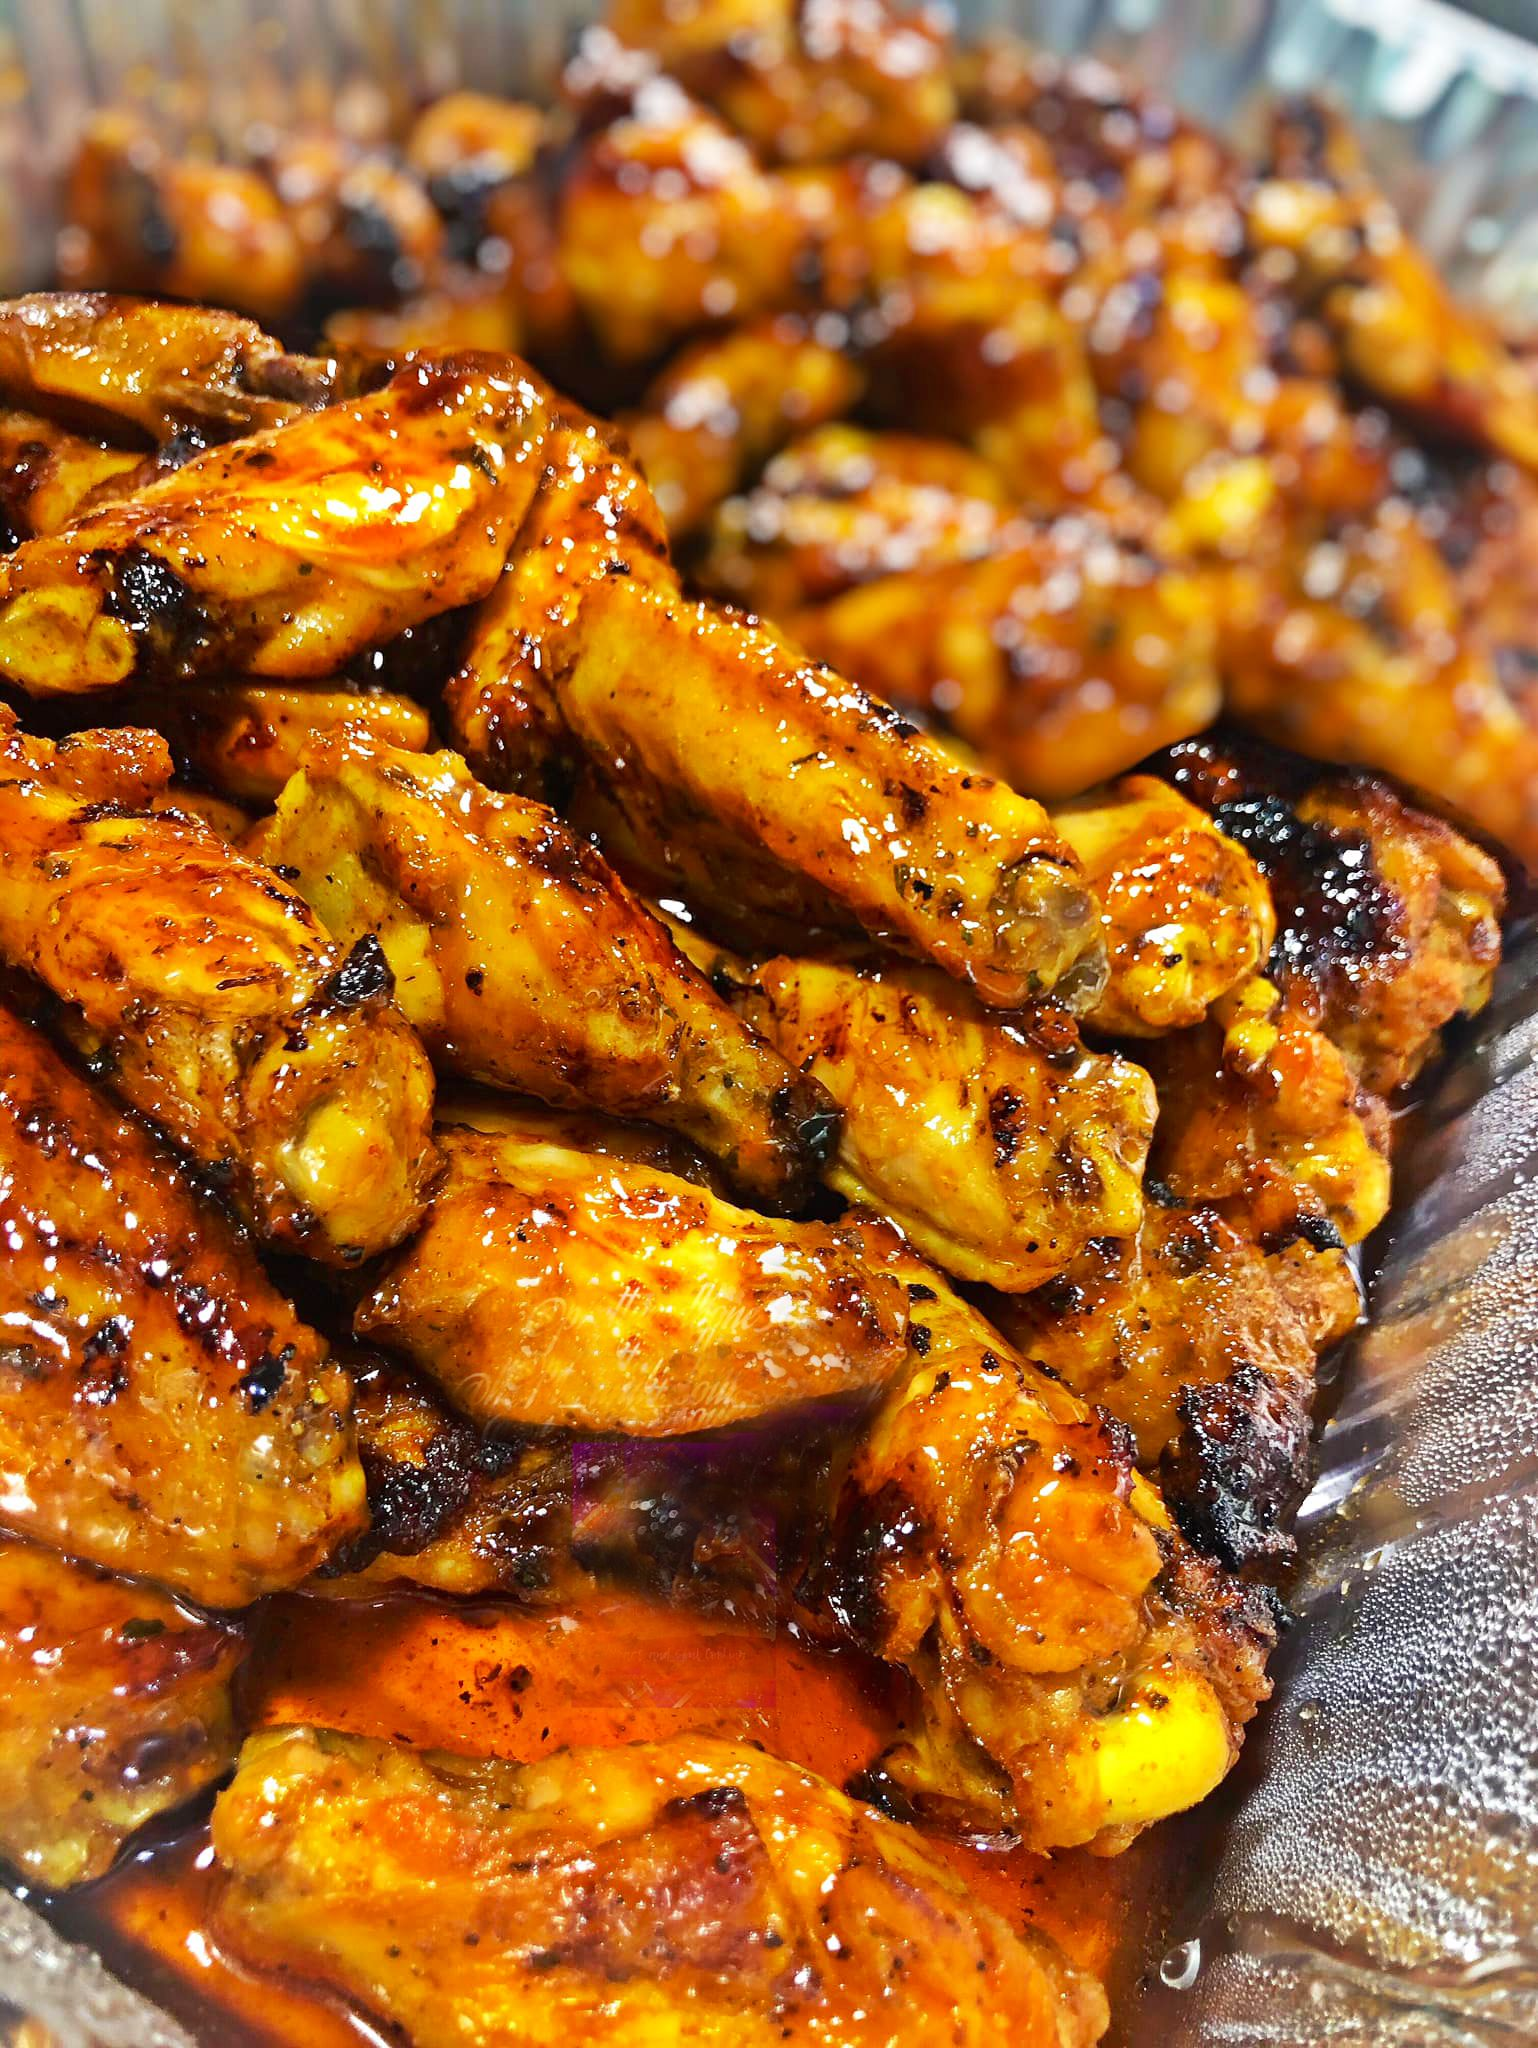 Savory Party Wings in 2020 Food, Turkey recipes, Party wings